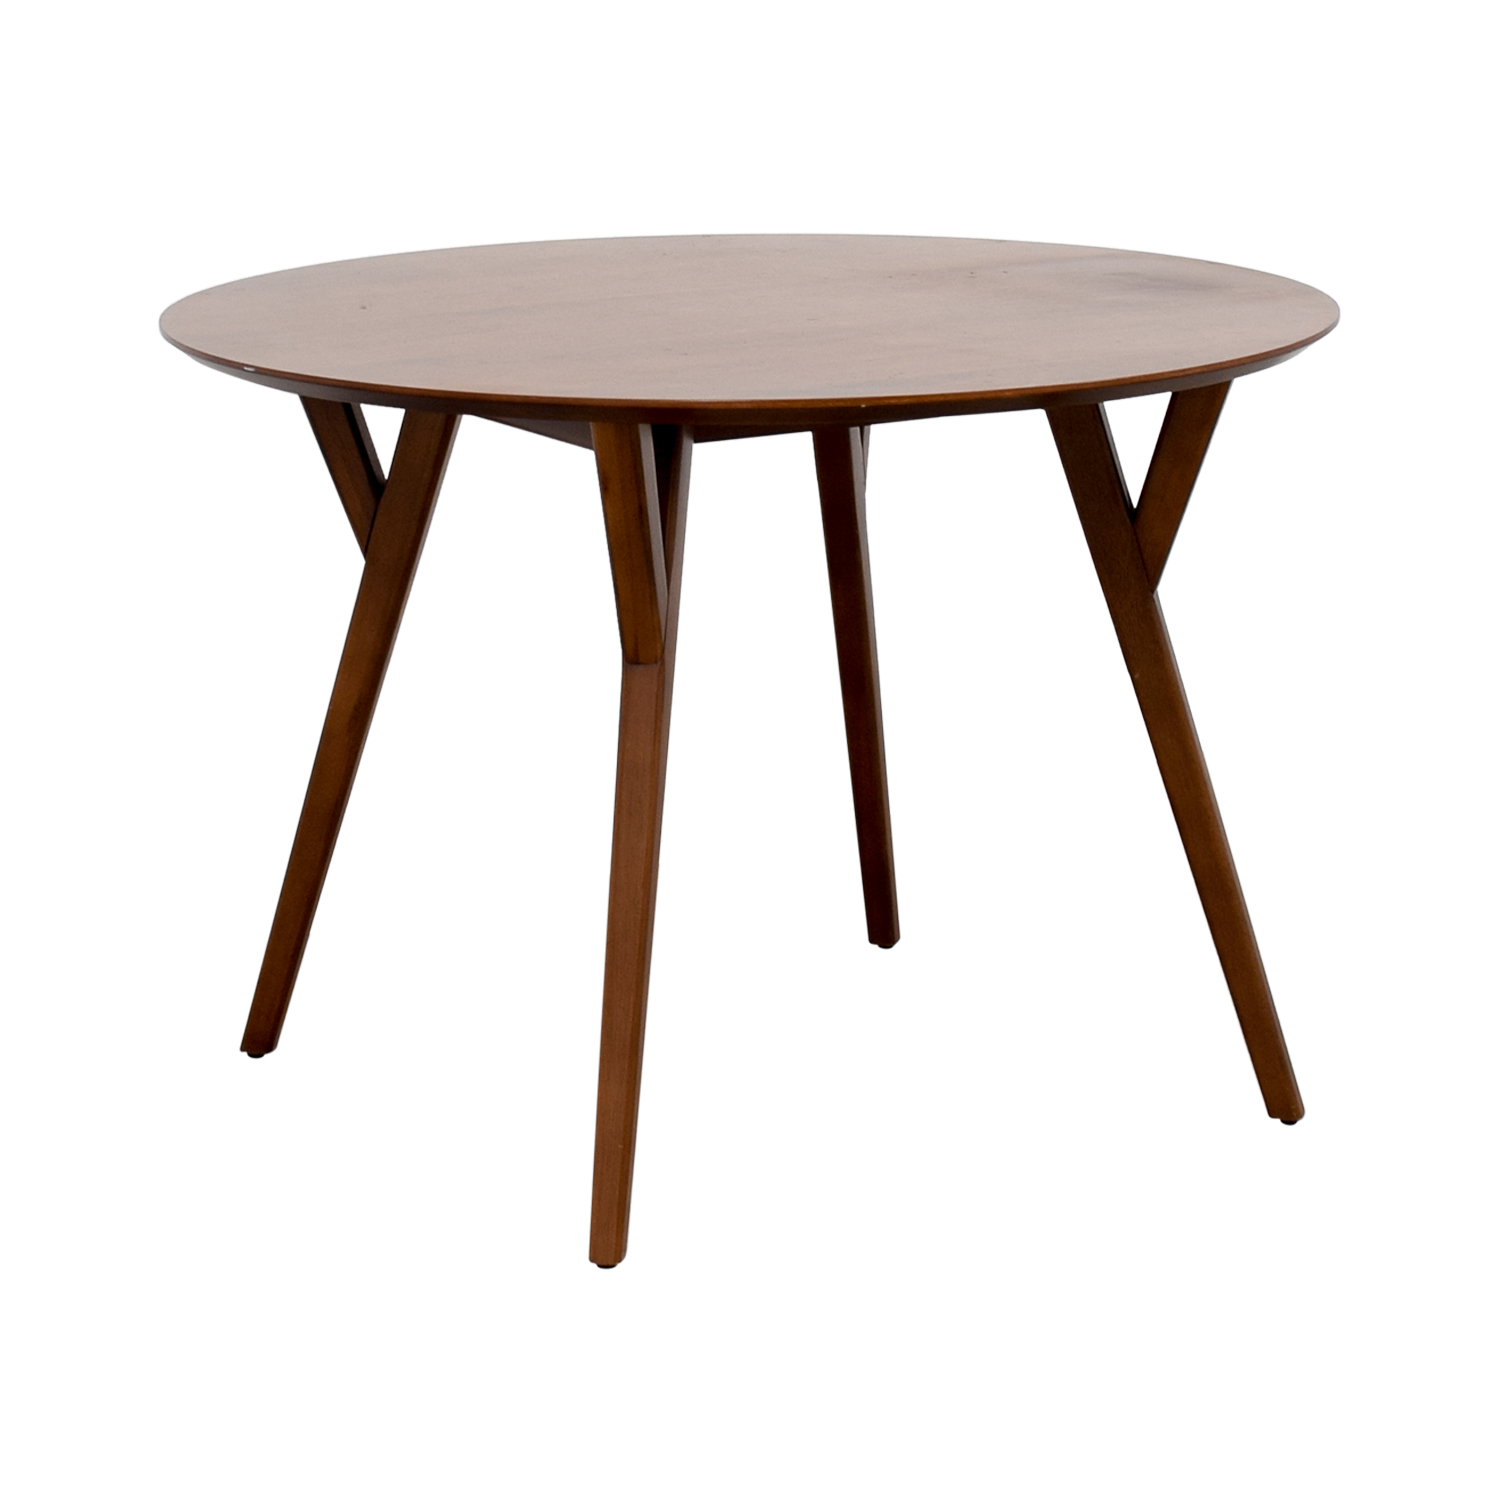 West Elm West Elm Round Wood Dining Table Dinner Tables